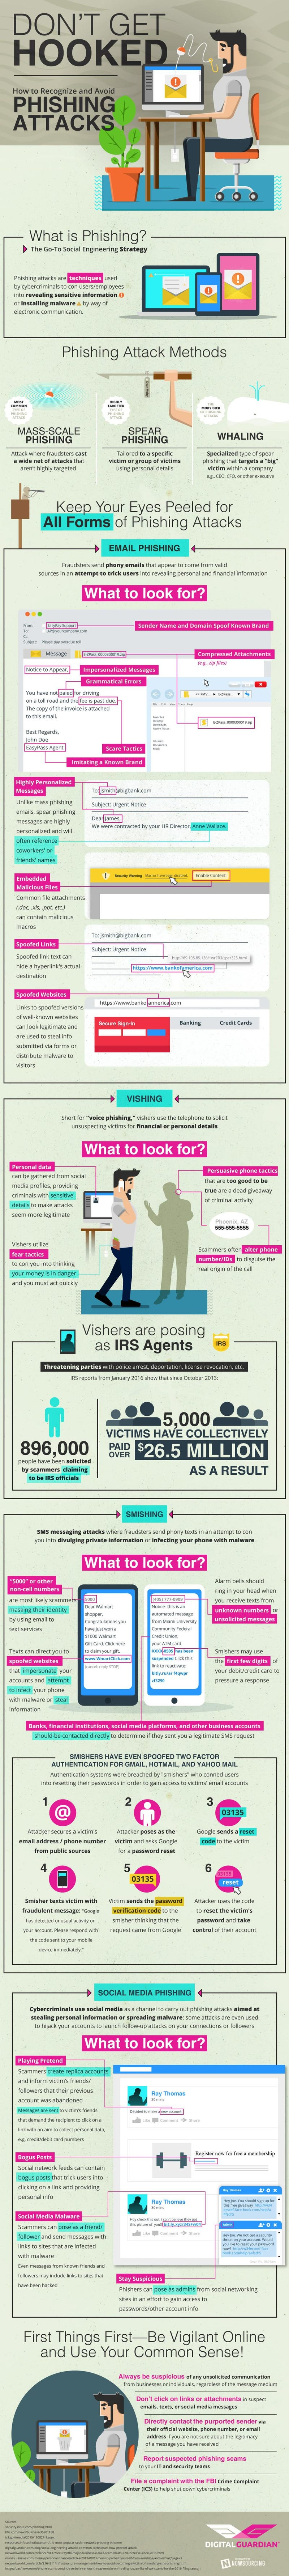 This Infographic Shows the Common Ways Scammers Try to Phish Your Account